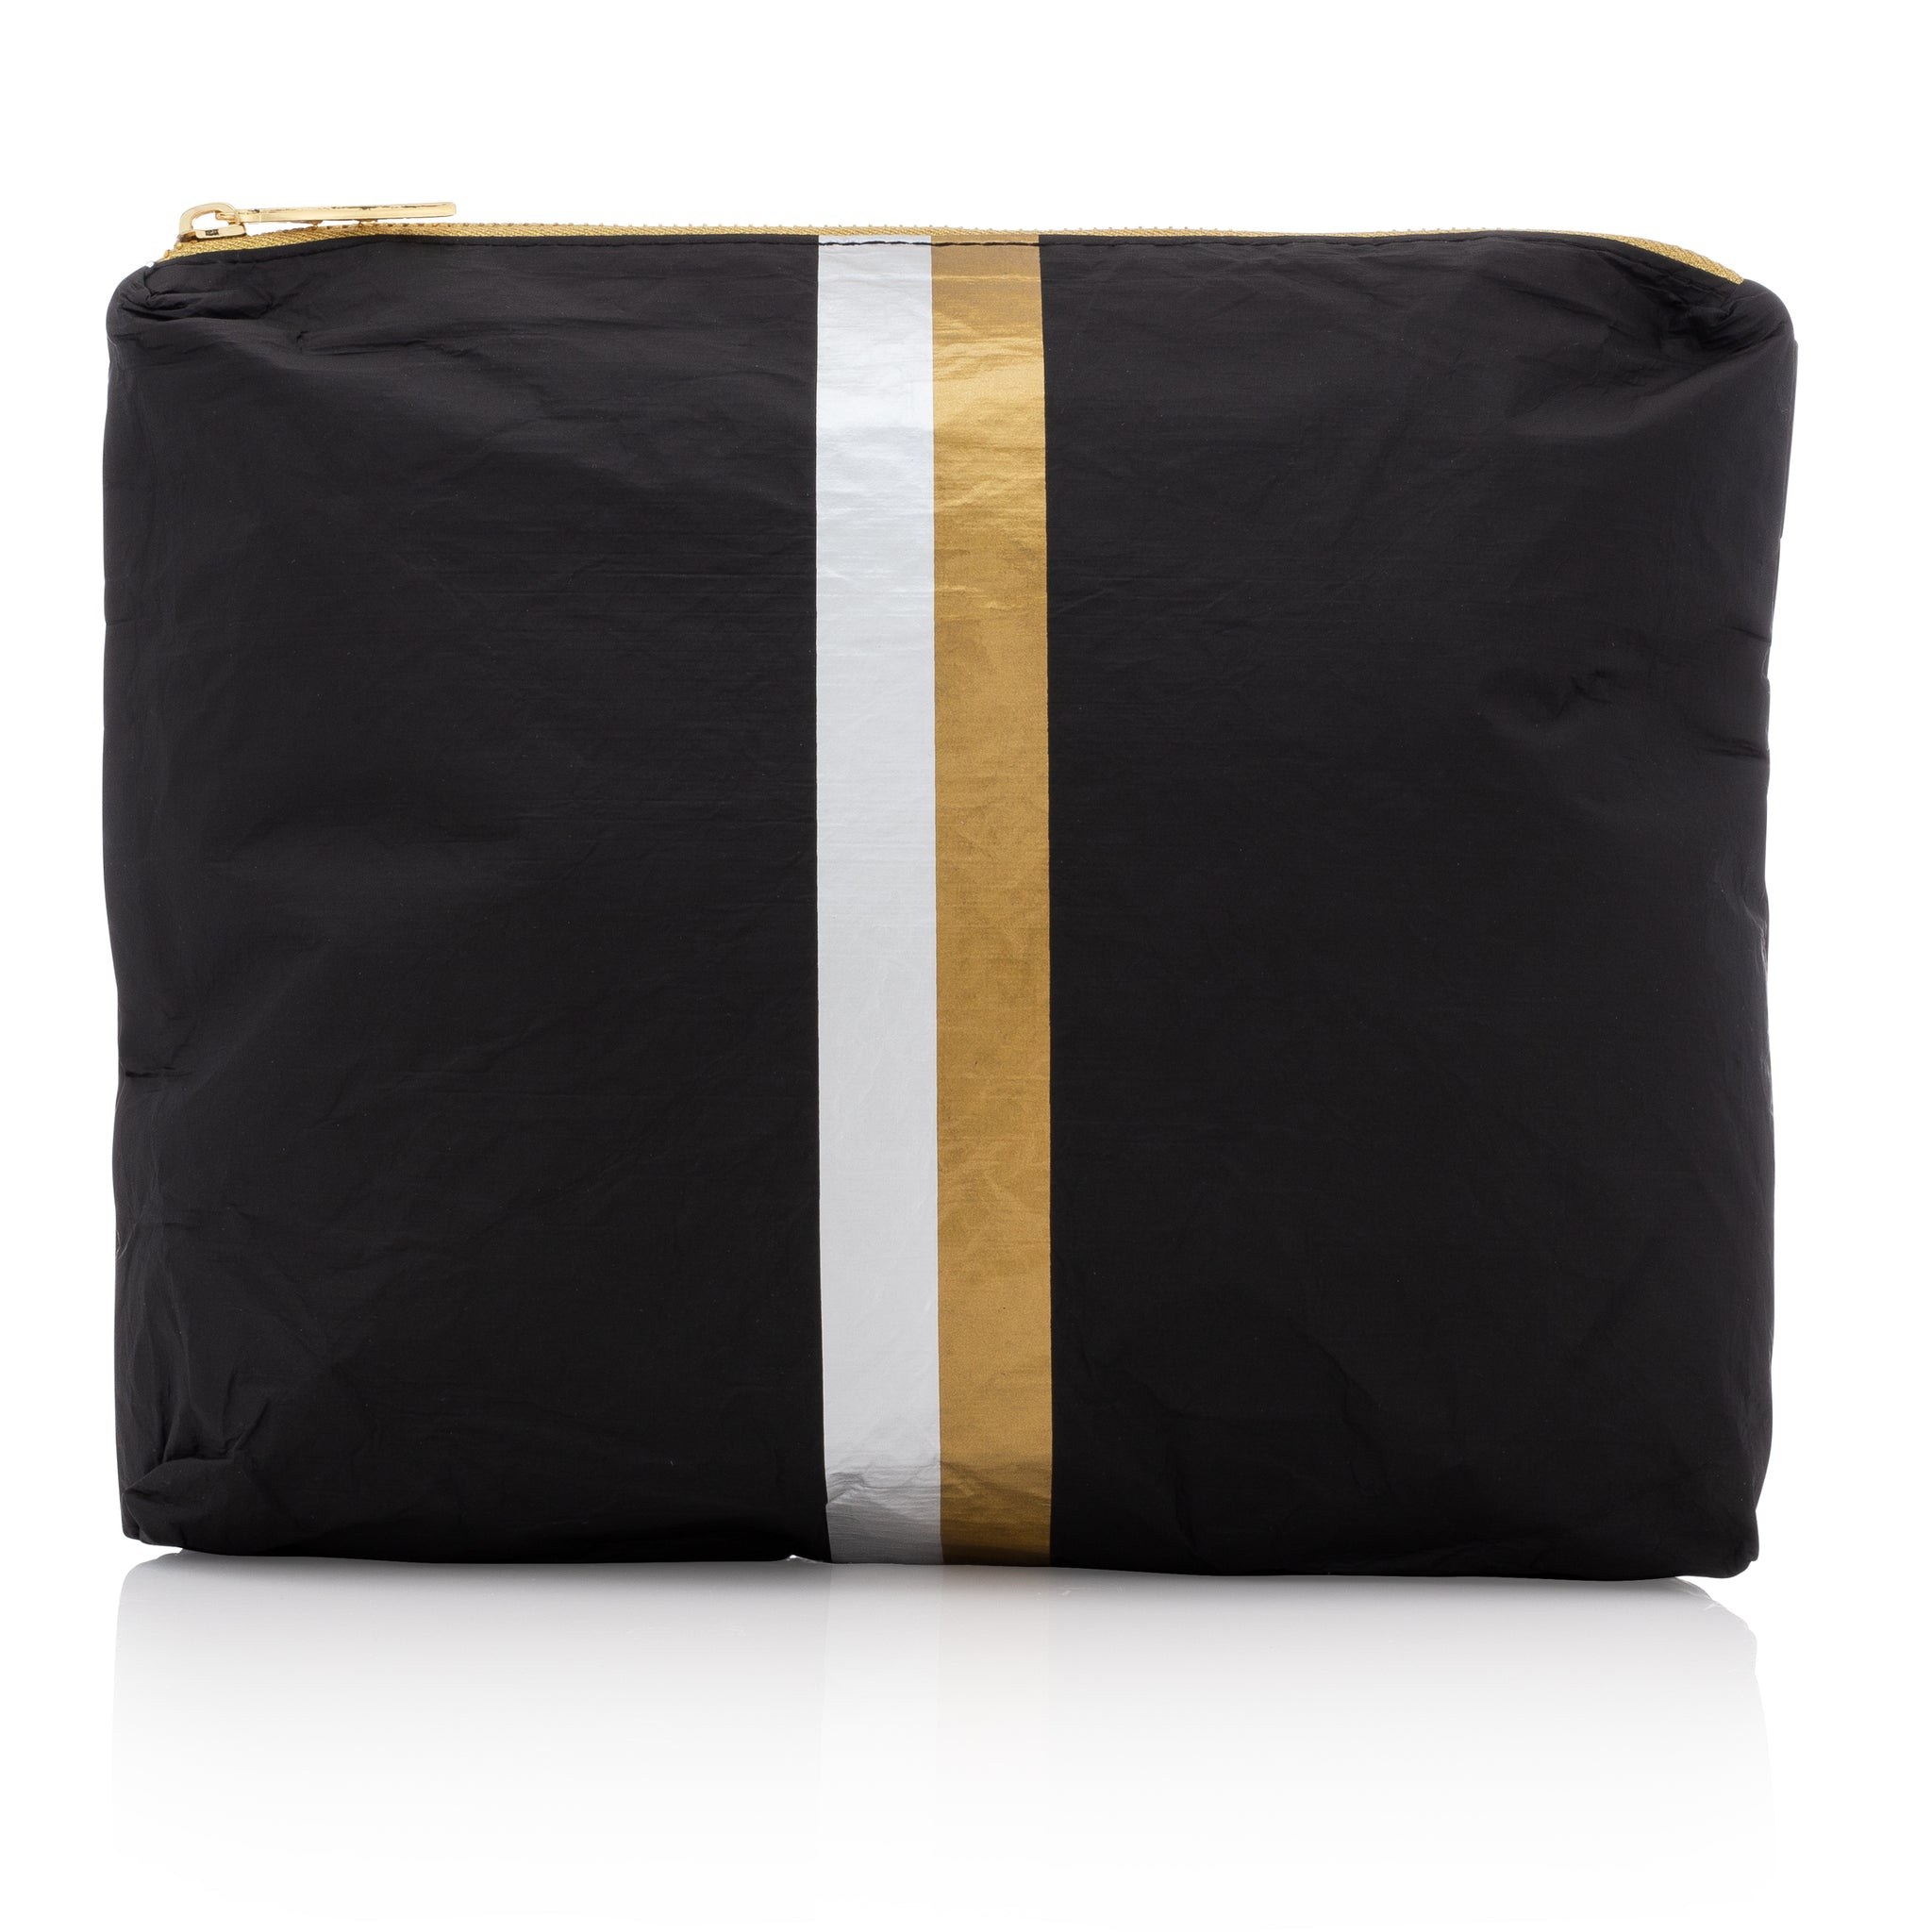 Makeup Pouch - Travel Pack - Cute Clutch - Medium Pack - Black with Metallic Silver and Gold Stripes